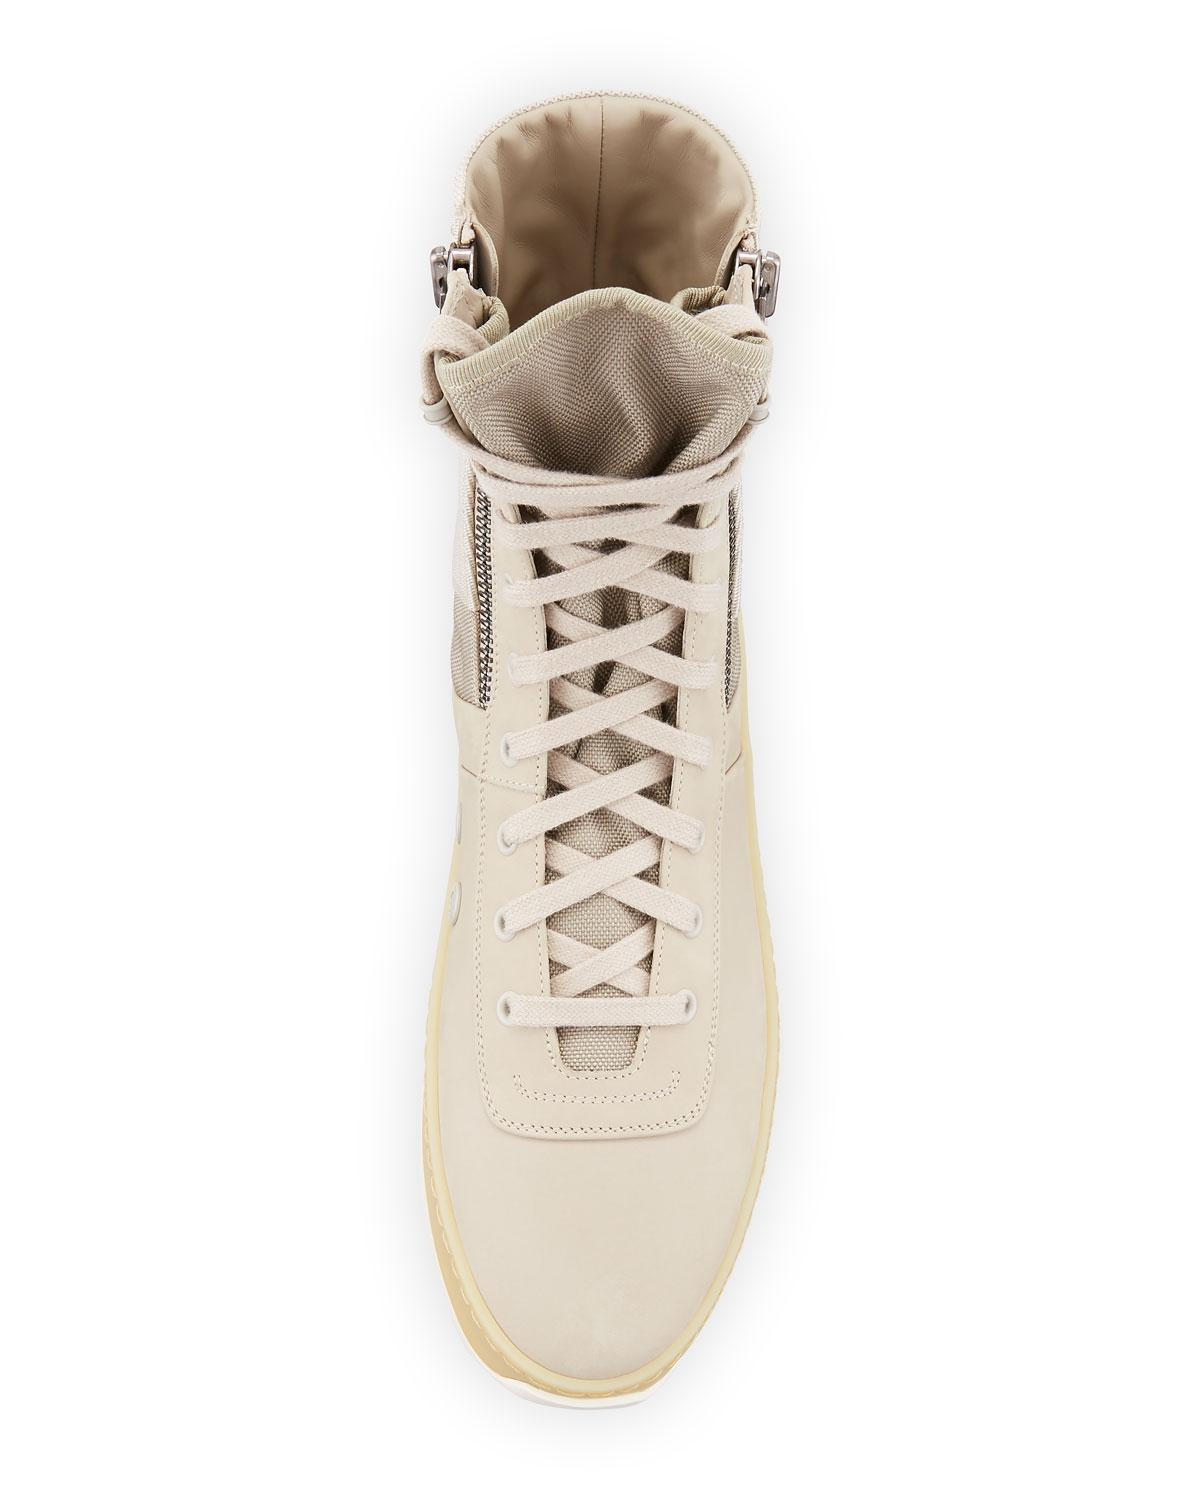 a03a31175b59 Lyst - Fear Of God Men s Leather High-top Military Sneakers in ...